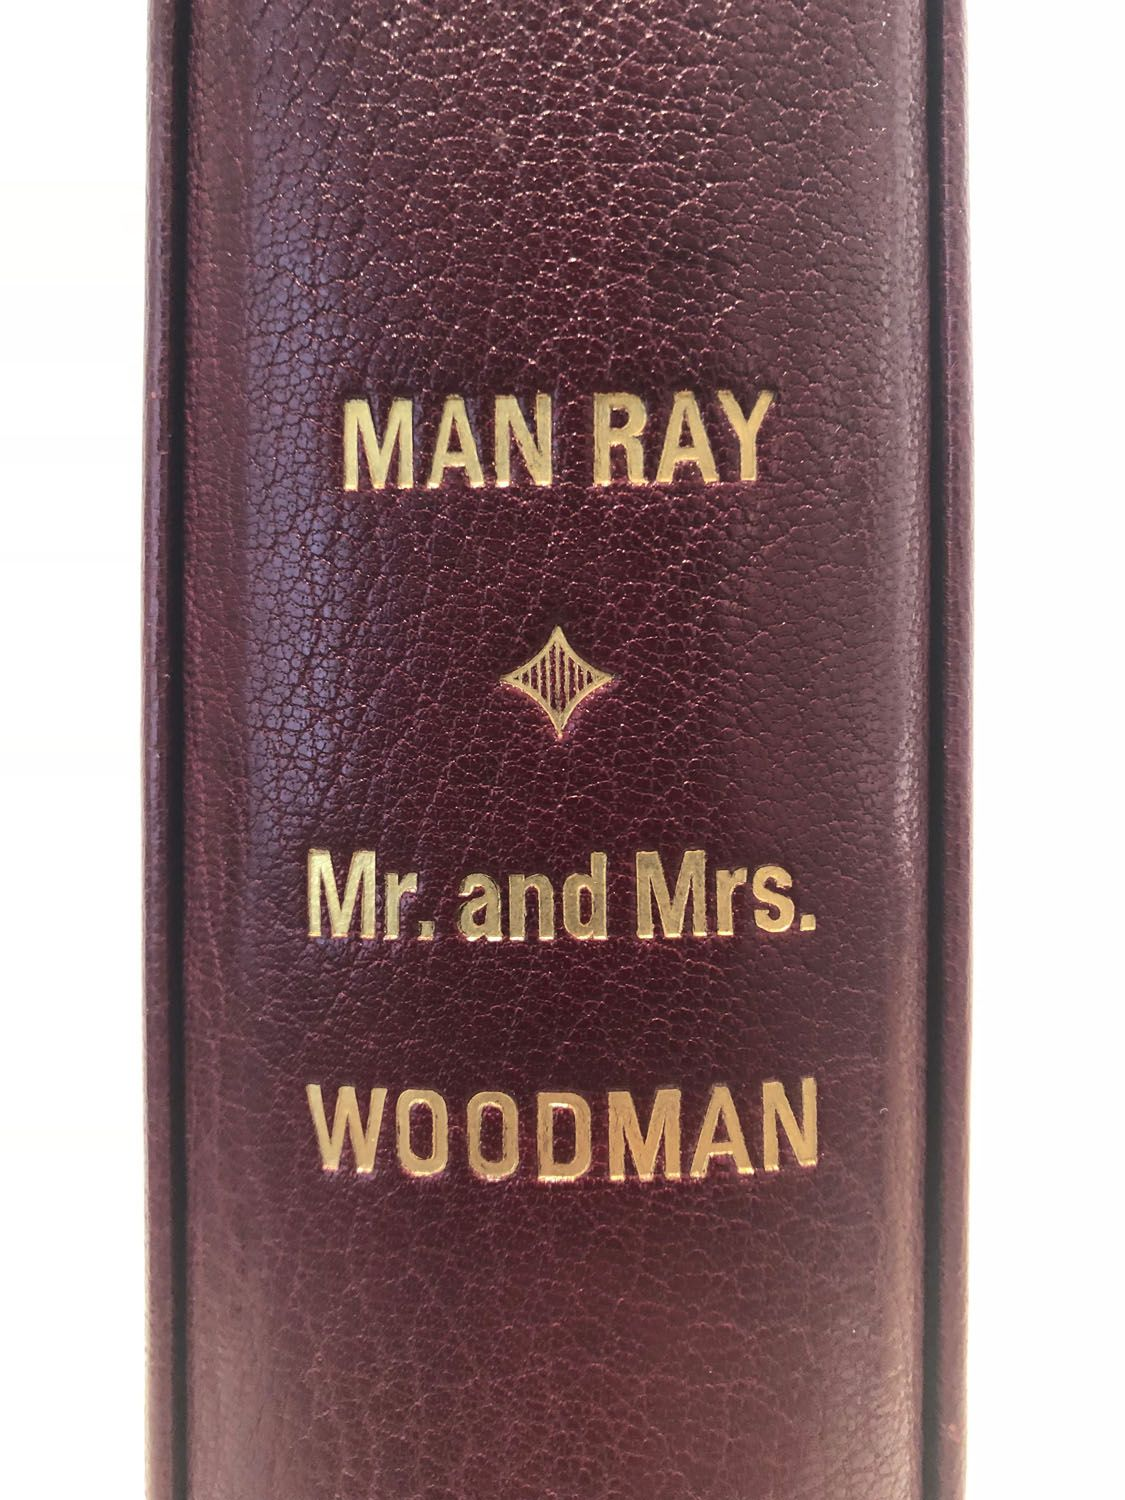 Man Ray, Mr. and Mrs. Woodman